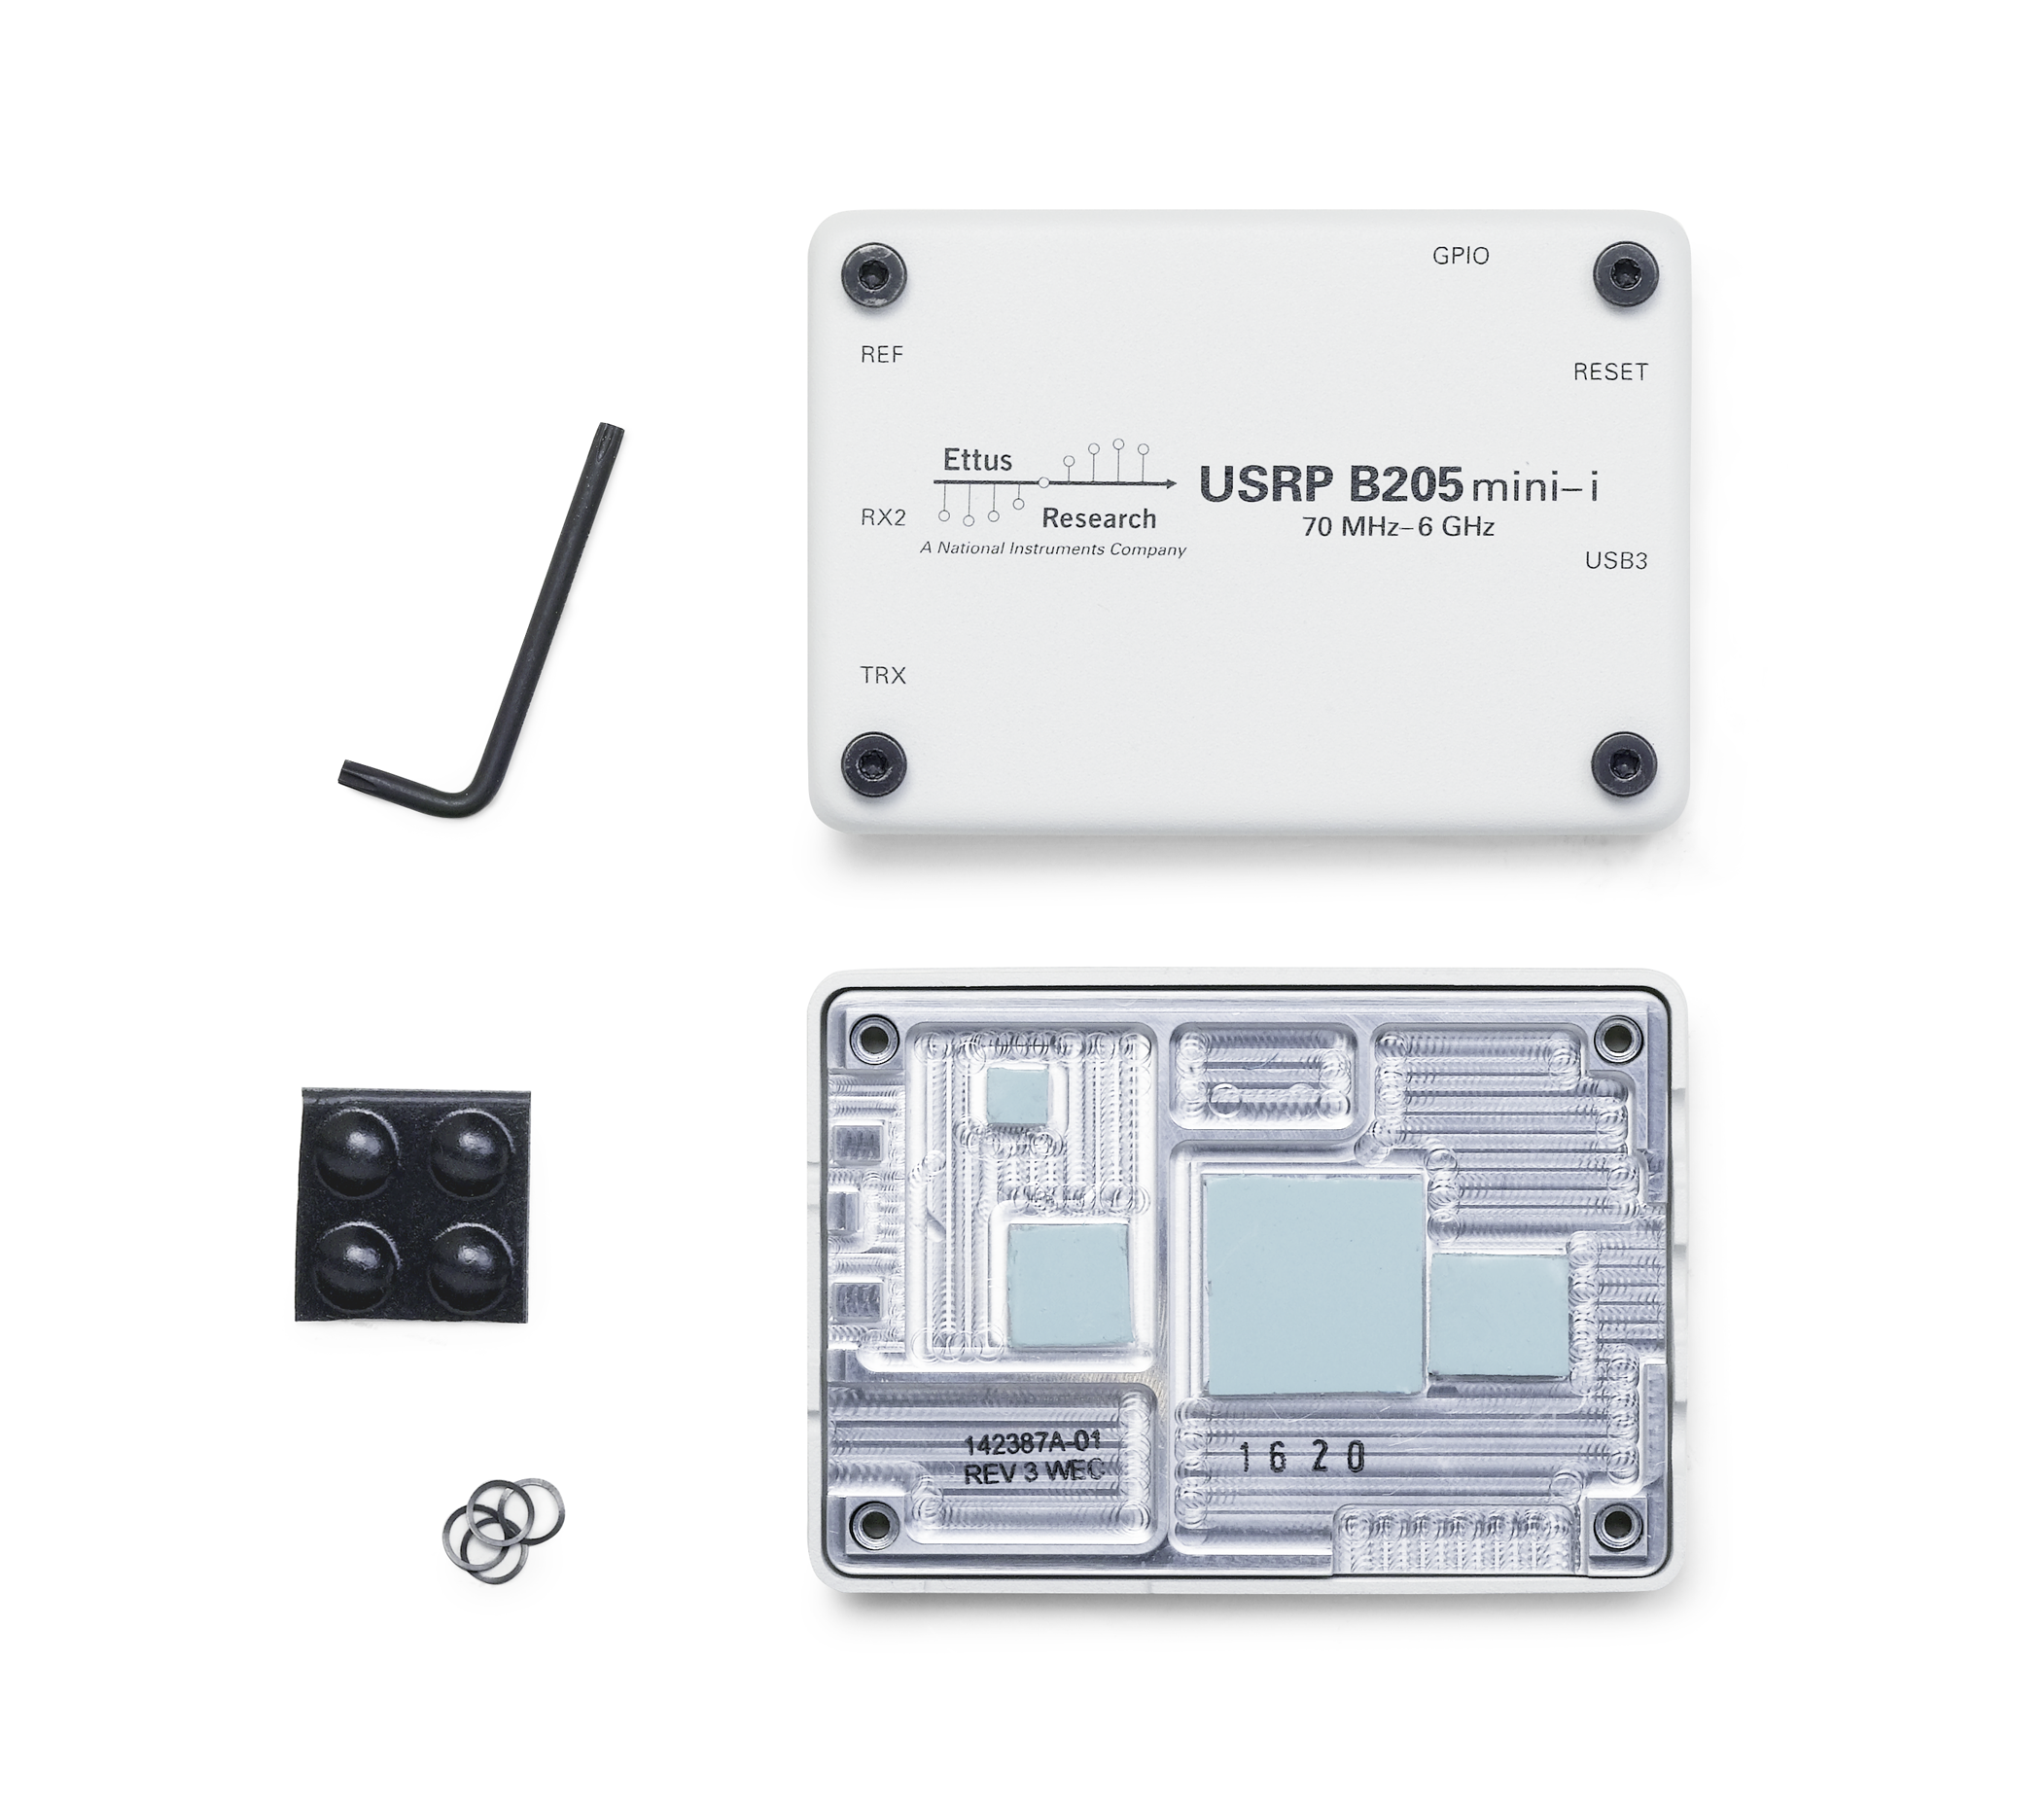 USRP B205mini-i enclosure kit